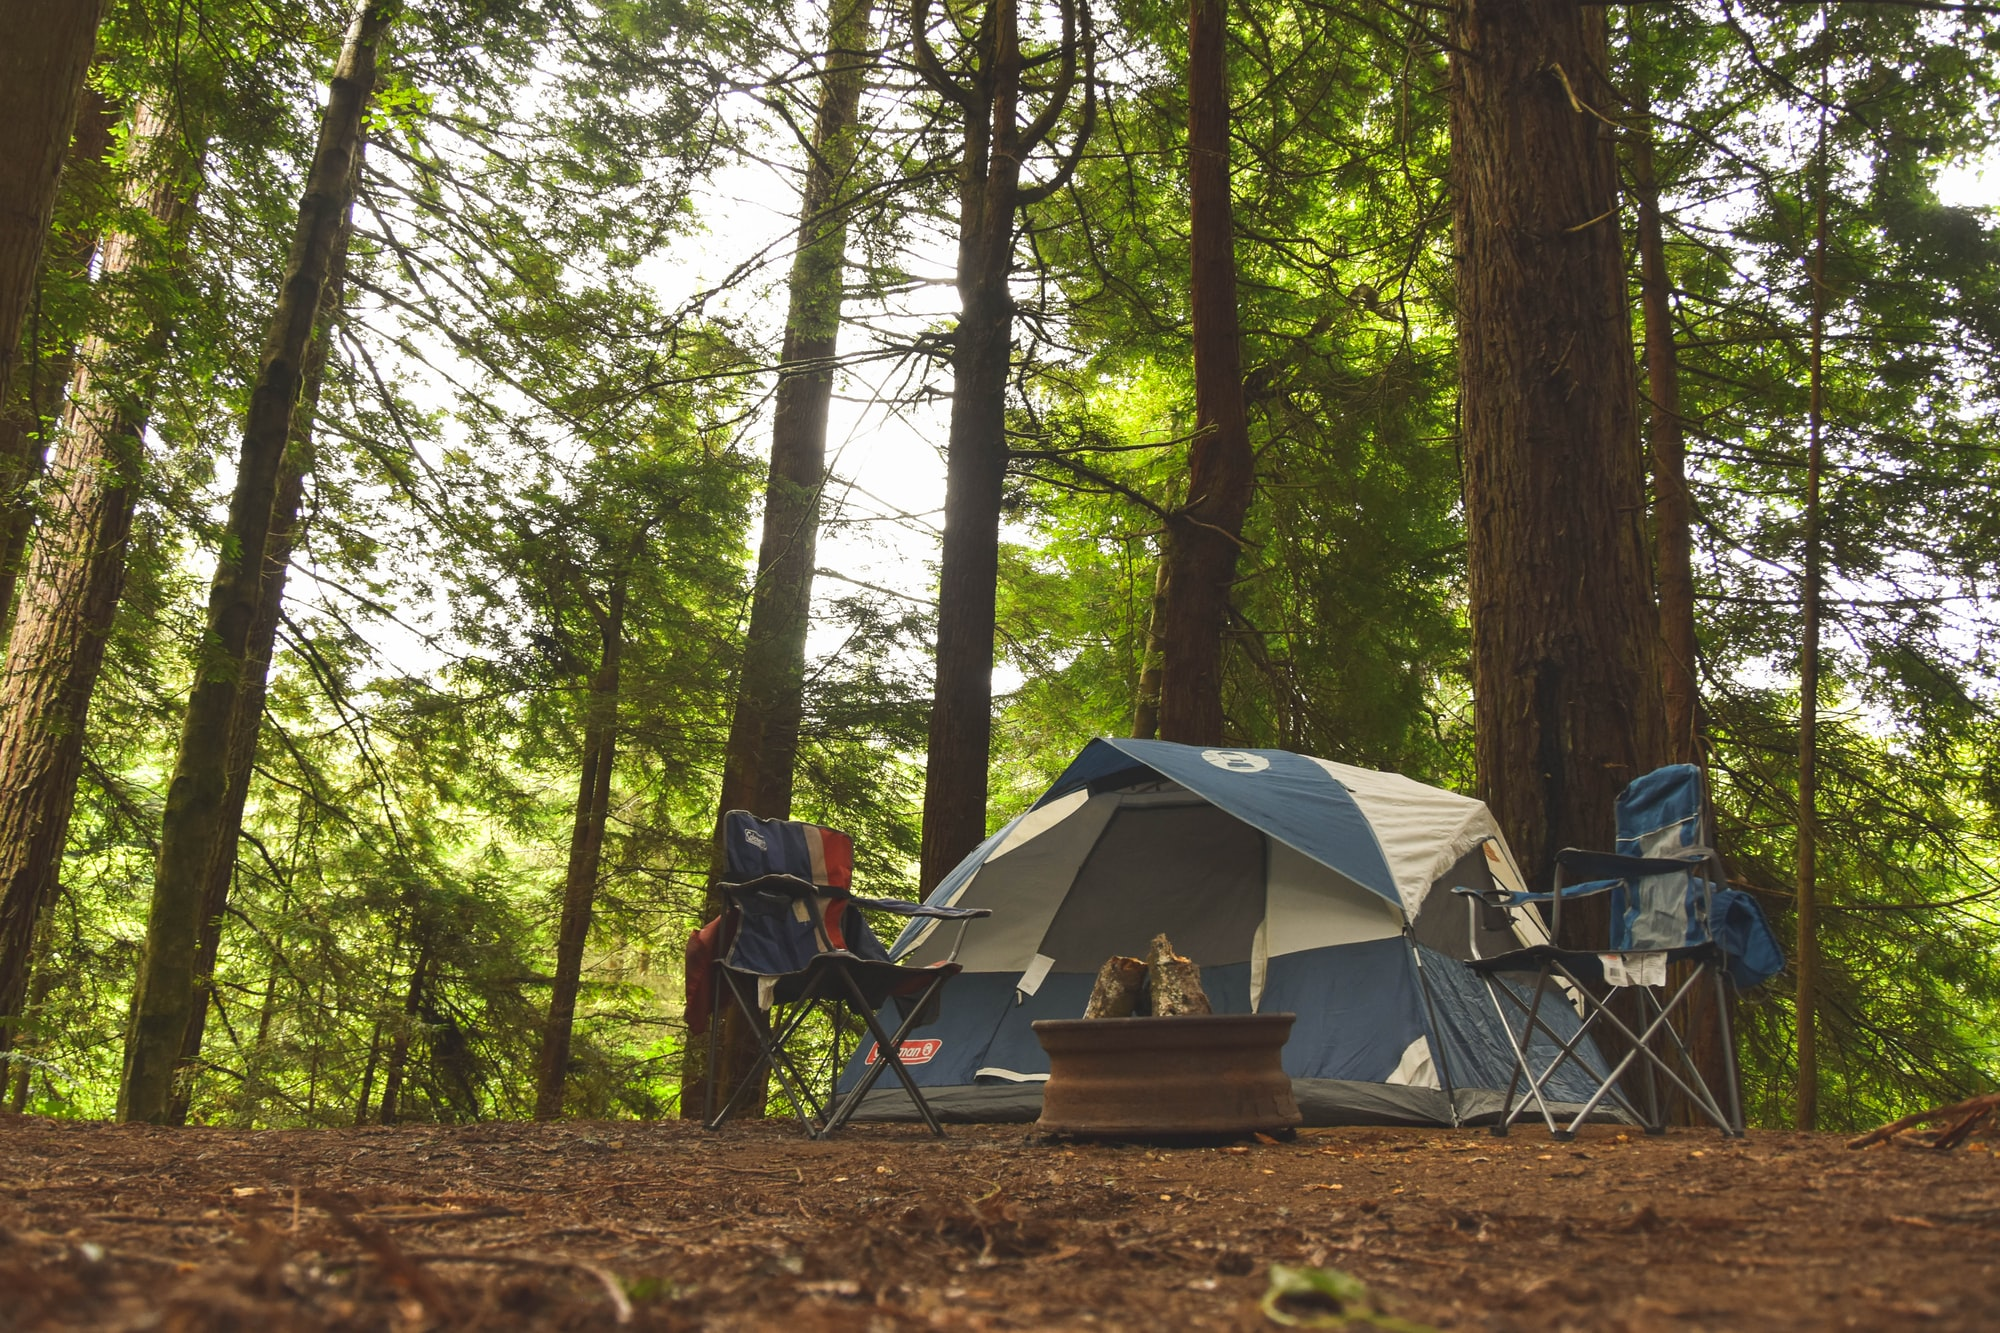 camping in woods with tent and two camp chairs